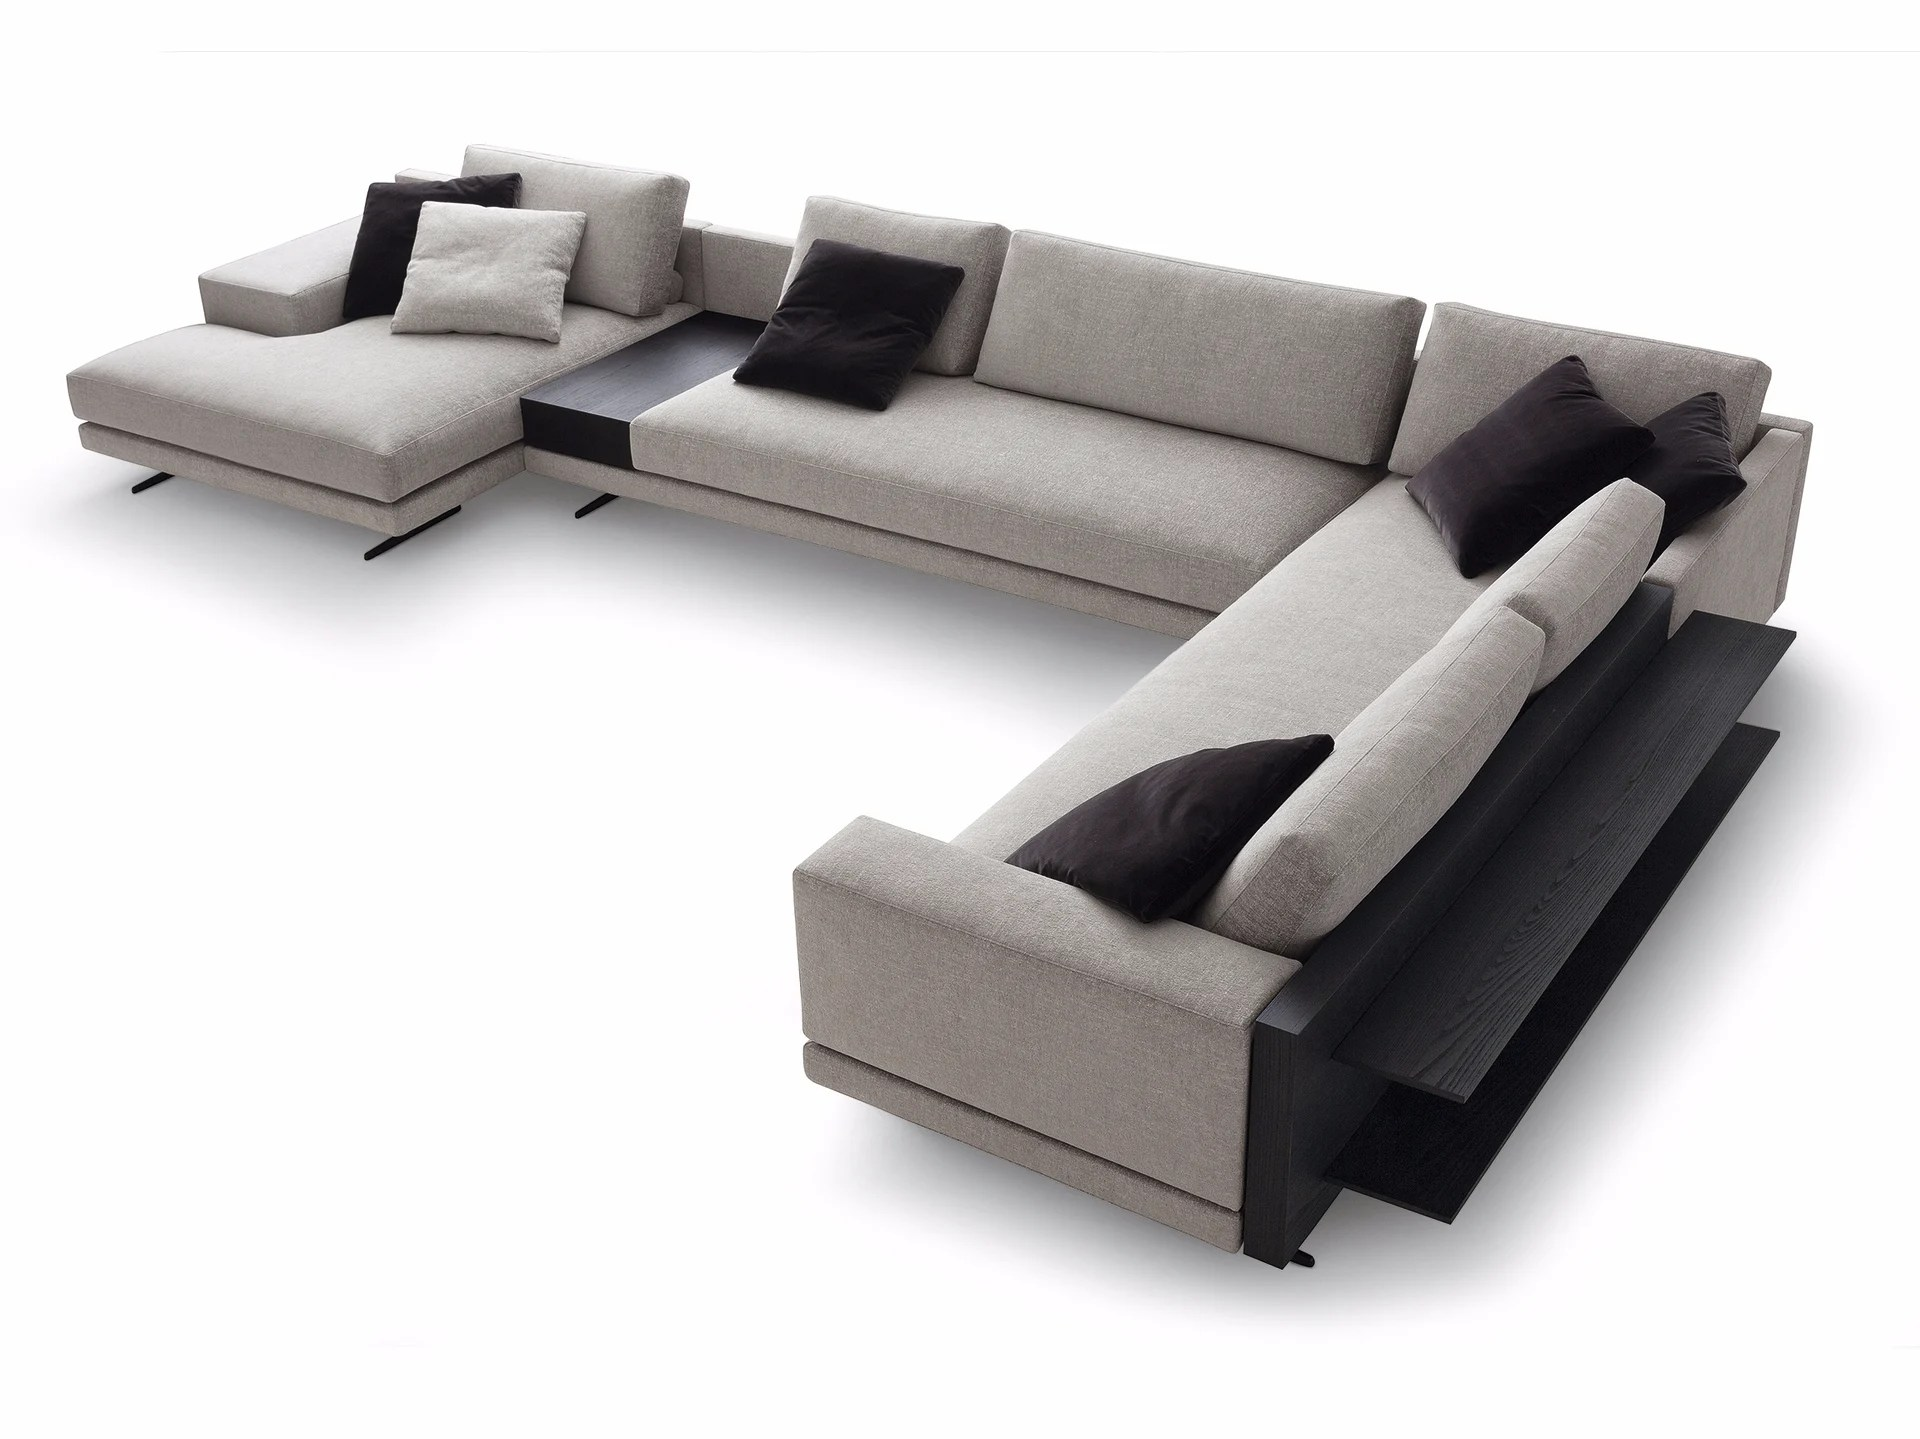 Retro Sofa Bristol Mondrian Corner Sofa Mondrian Collection By Poliform